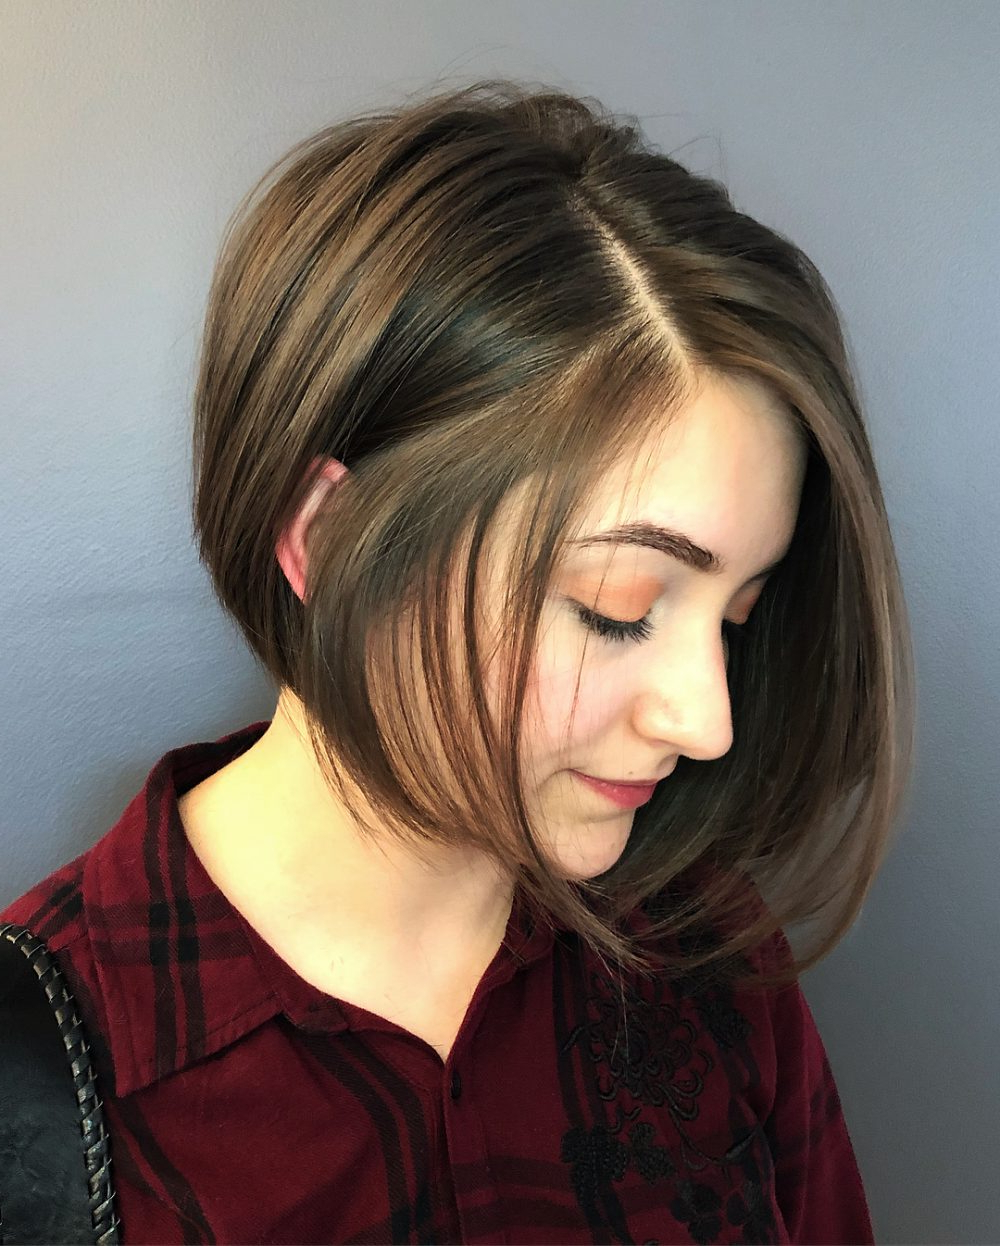 33 Flattering Short Hairstyles For Round Faces In 2018 With Short Haircuts For Round Faces And Thick Hair (View 12 of 25)